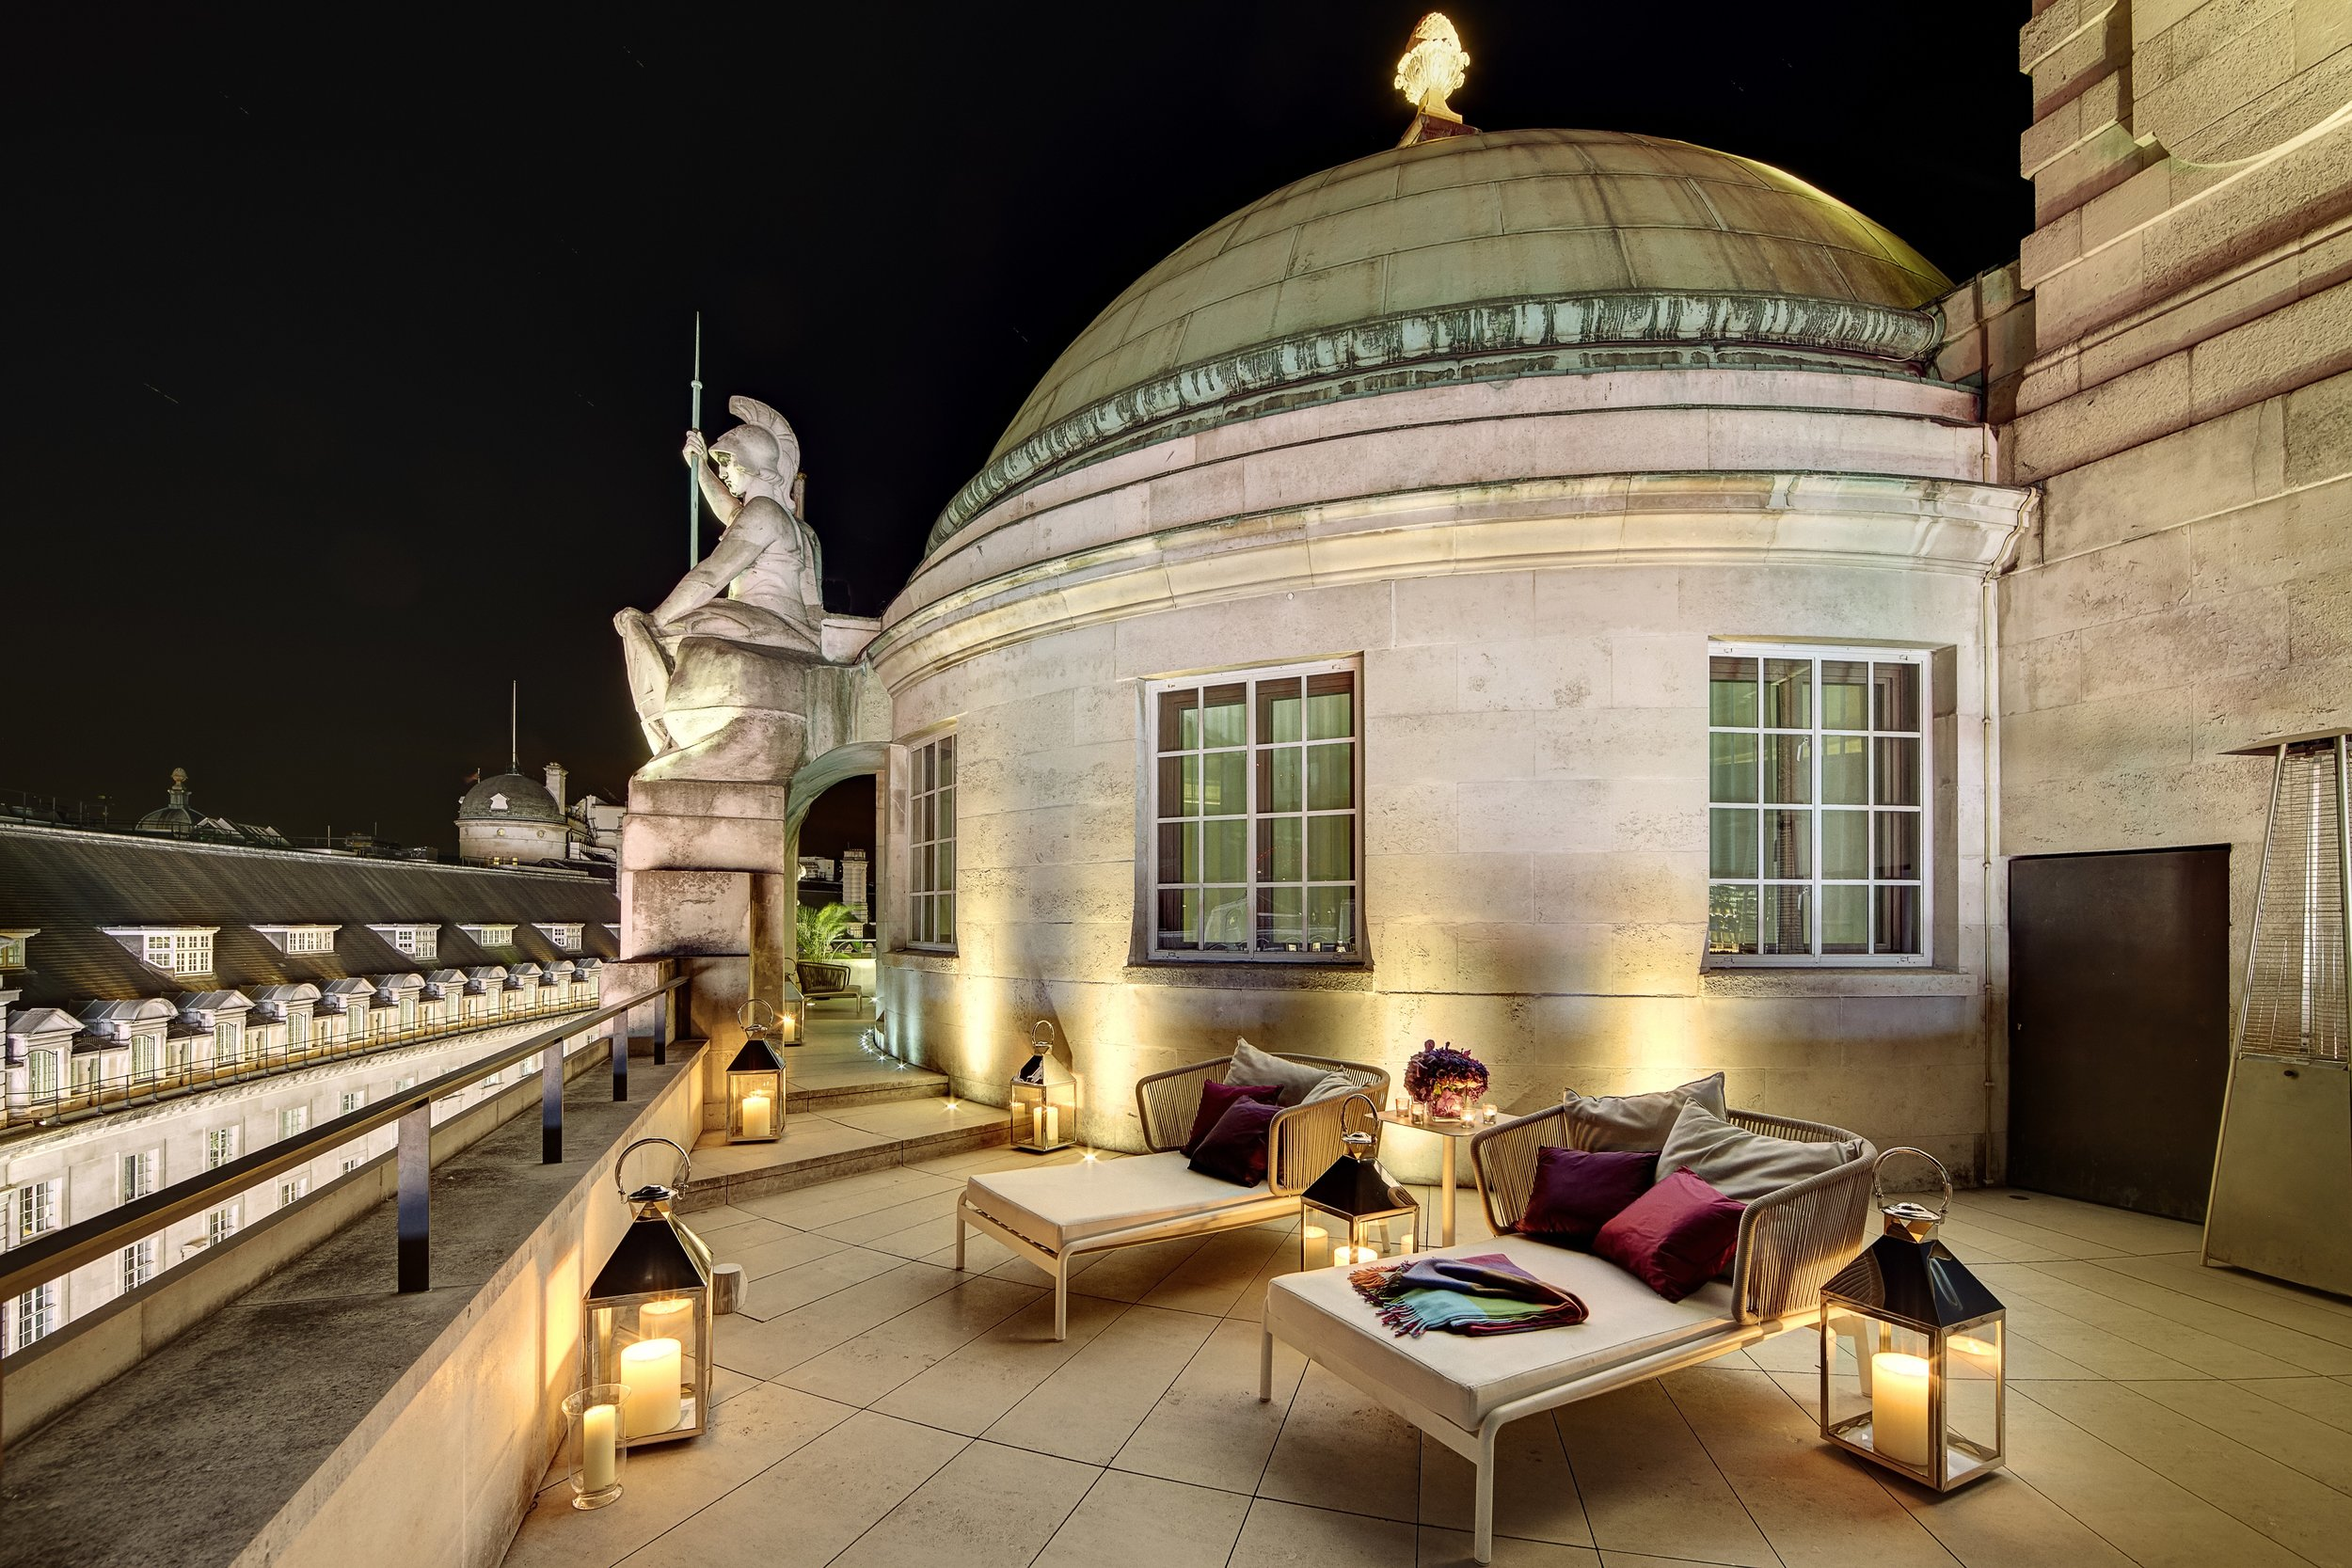 Hotel Cafe Royal - Dome Penthouse - Terrace at Night 1.jpg